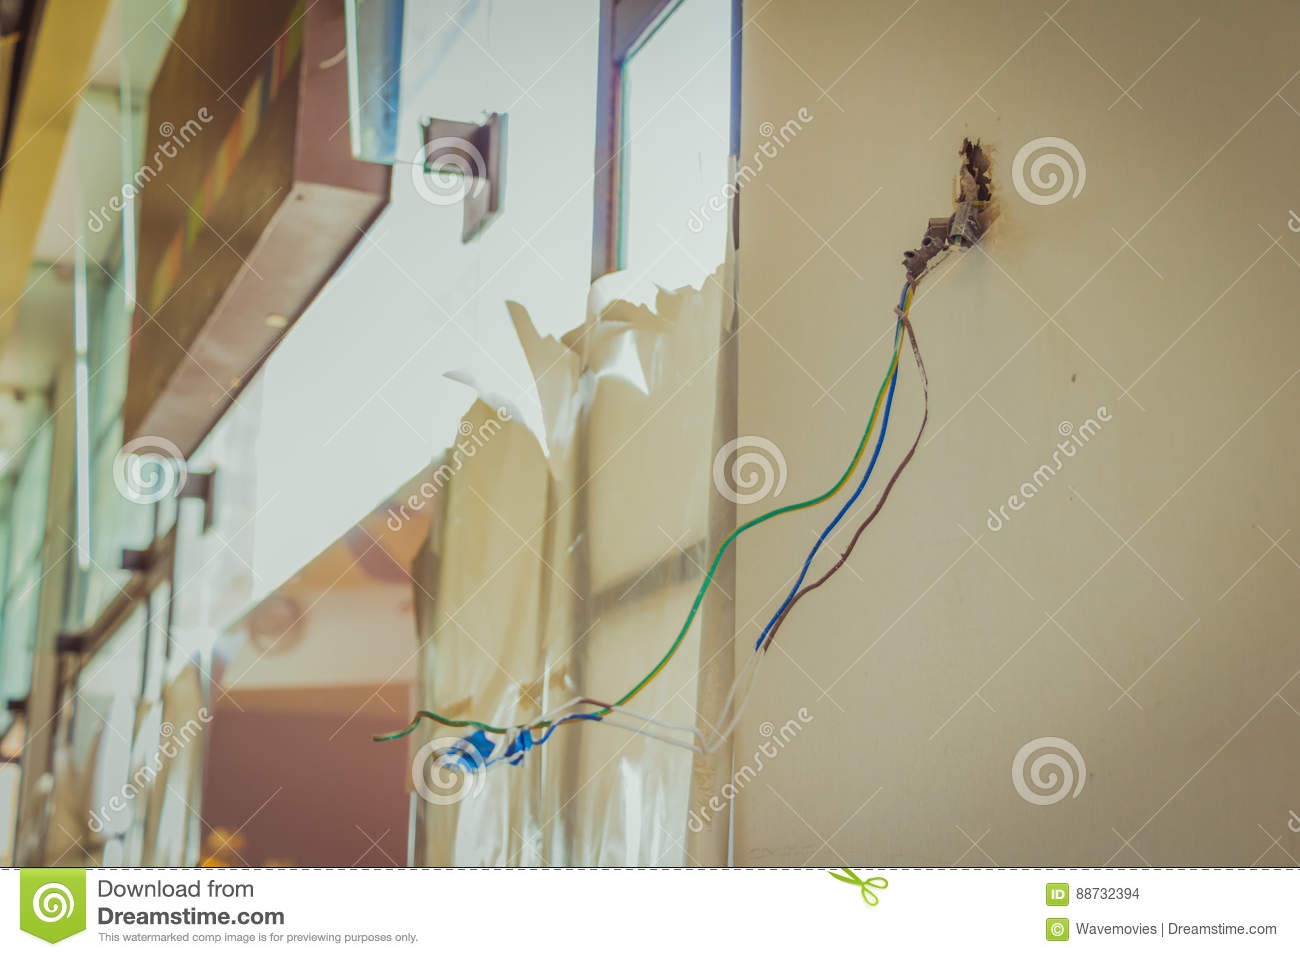 Brilliant Electrical Exposed Wires Protruding From Socket On Newly Tiles C Wiring Digital Resources Operpmognl